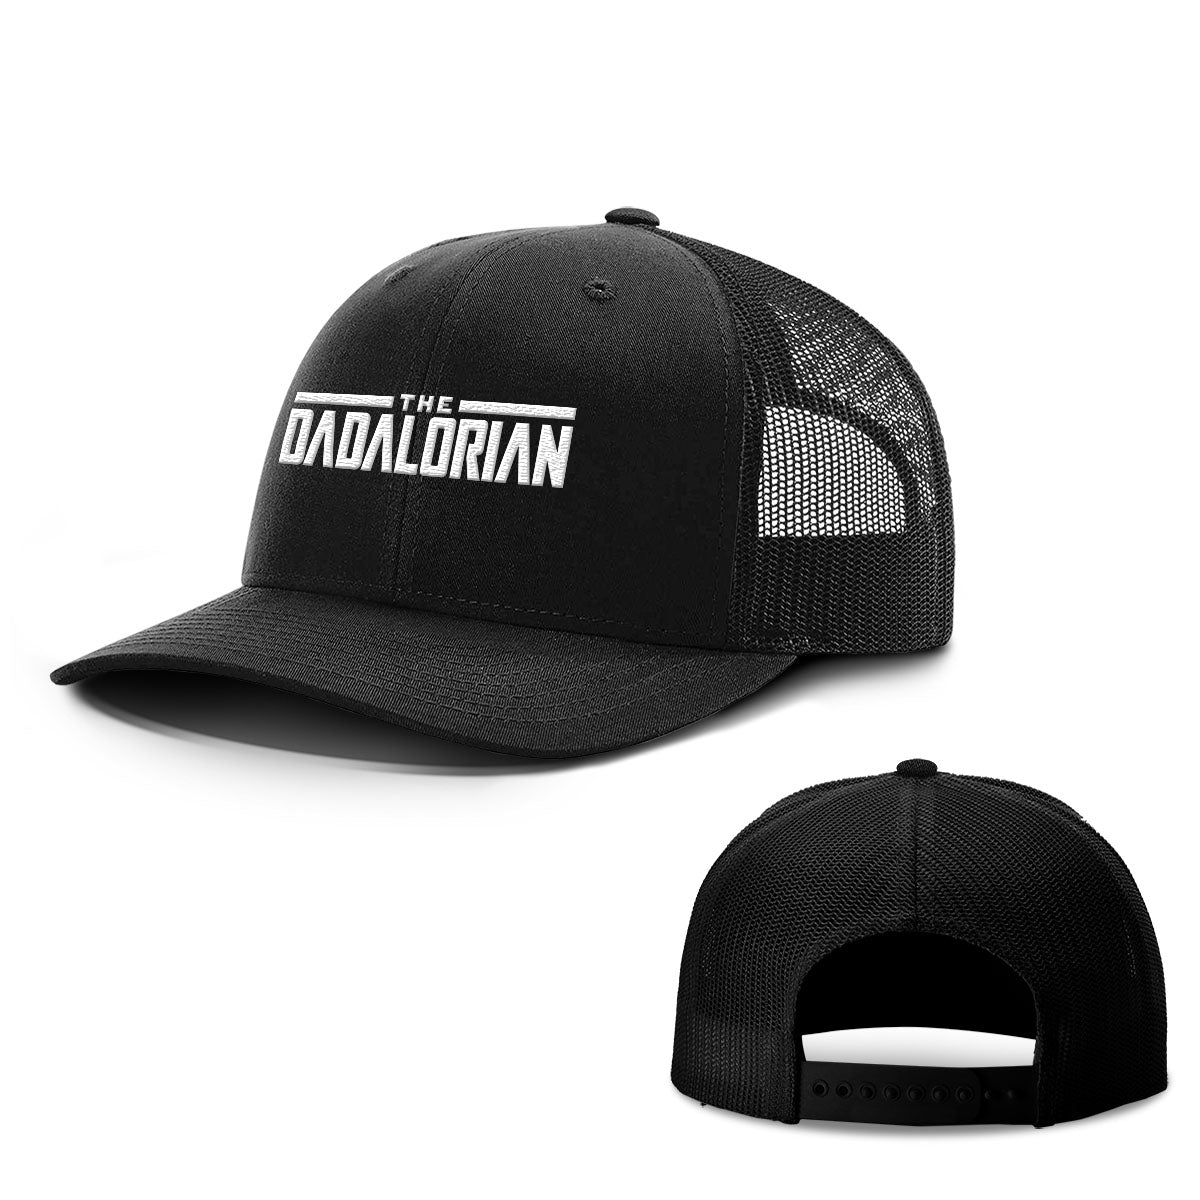 The Dadalorian Hats